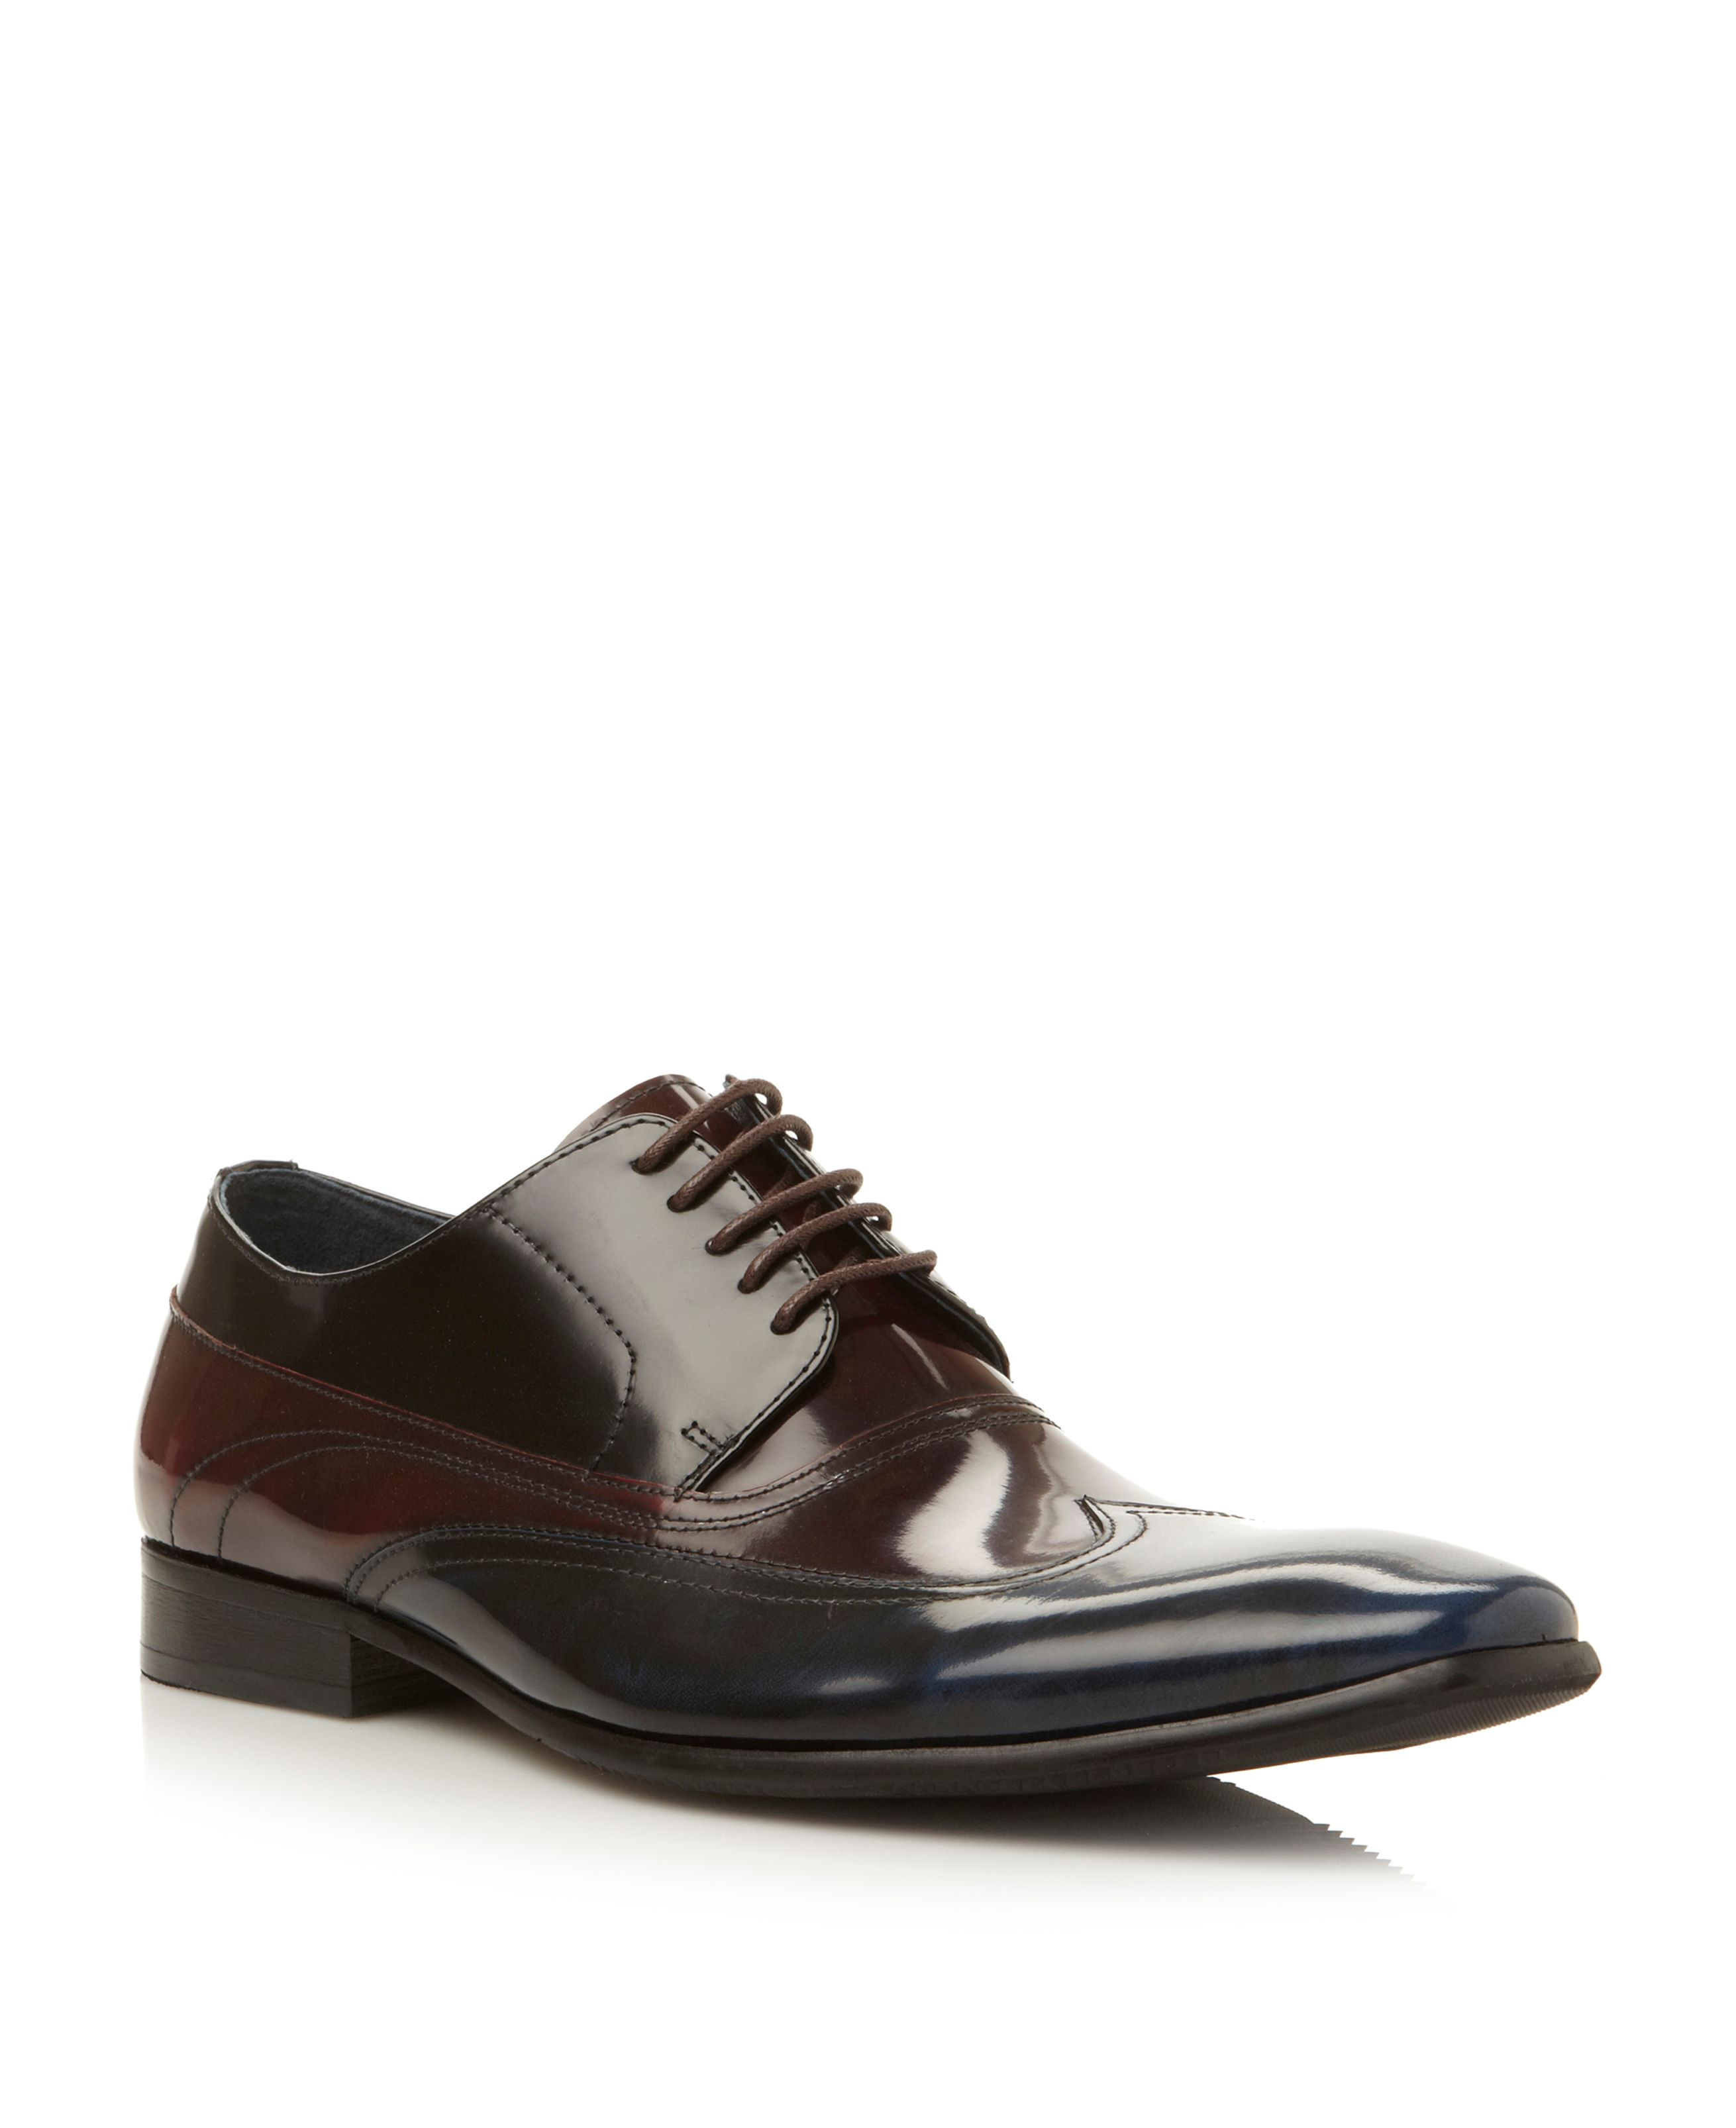 Skillman lace up tri colour wingtip shoes